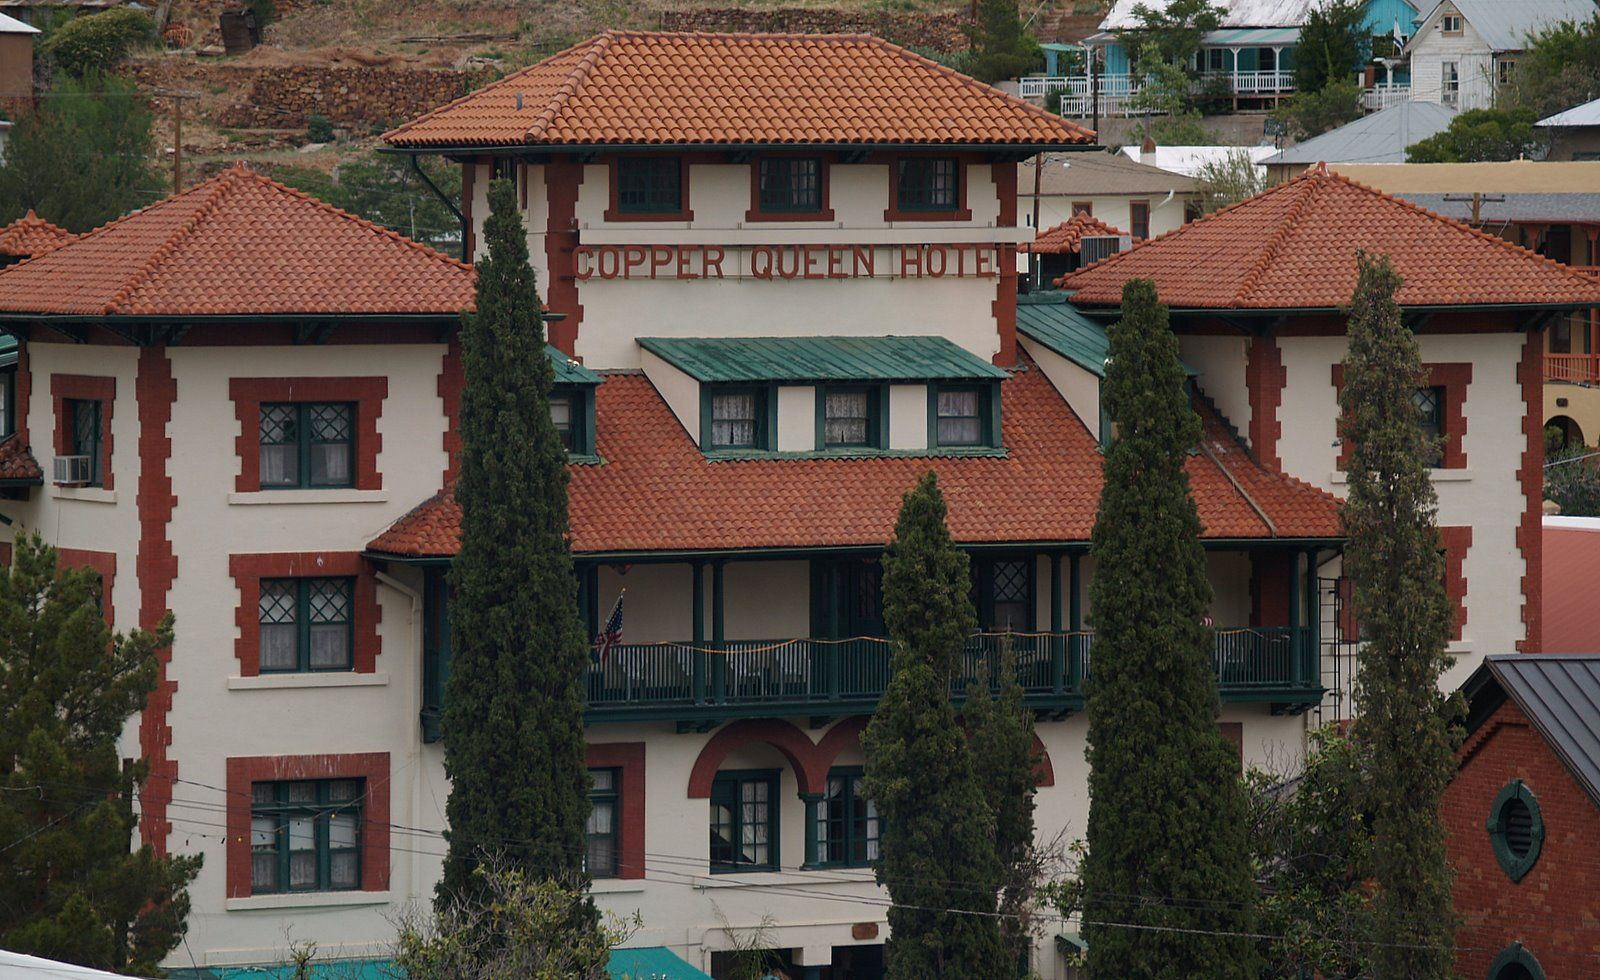 Copper Queen Hotel Bisbee Arizona There Are Reportedly Three Resident Ghosts In The One Of Ghostly Residents Is An Older